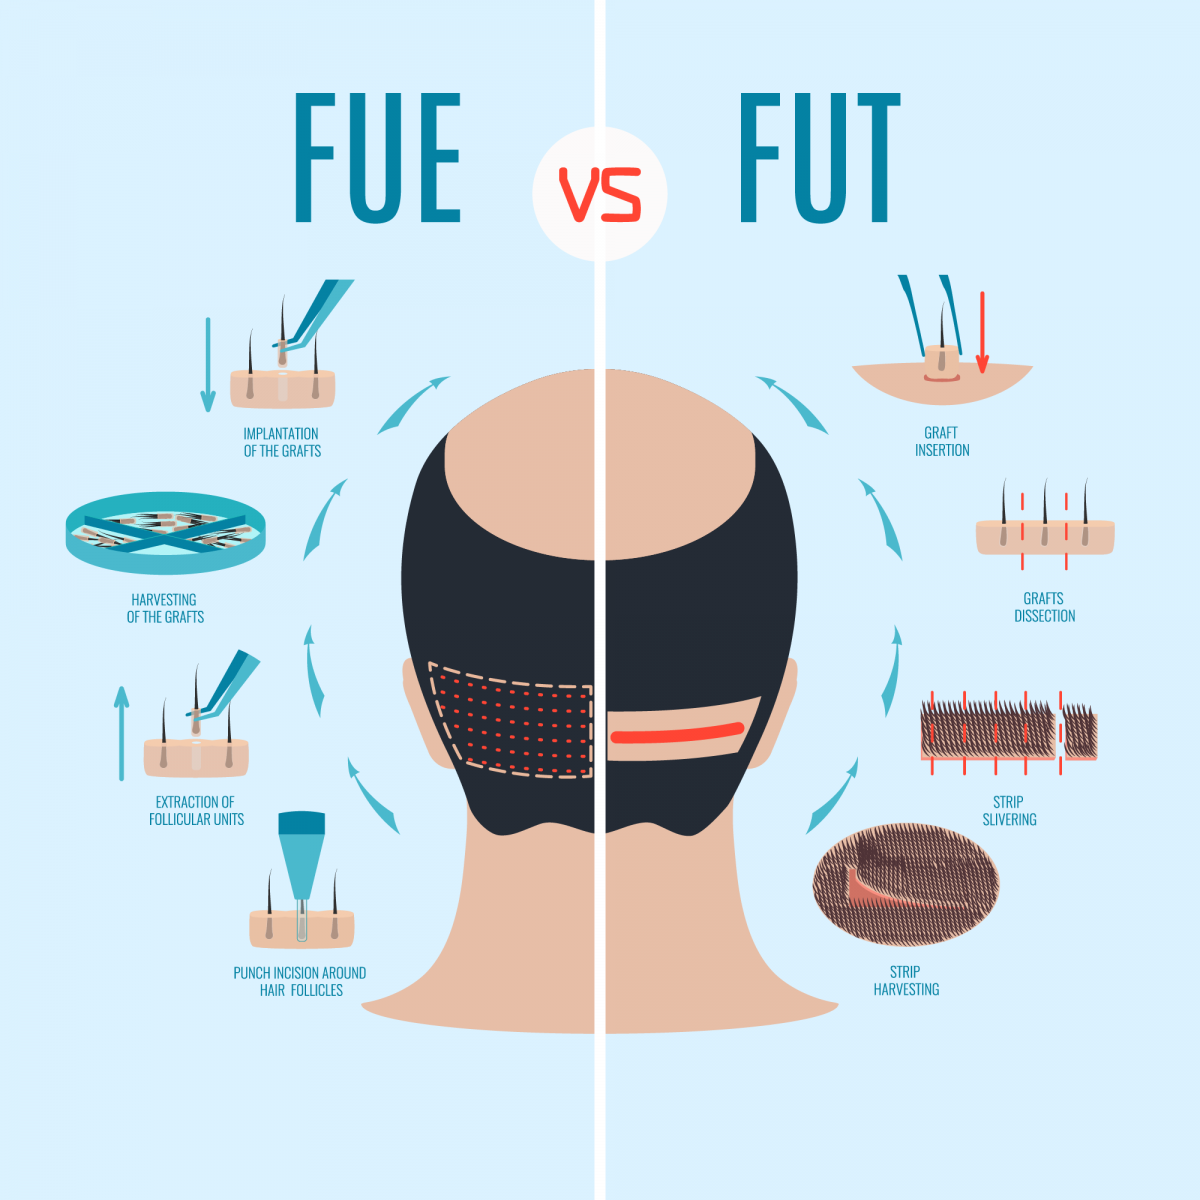 Follicular Unit Extraction (FUE) Versus Follicular Unit Transplantation (FUT)